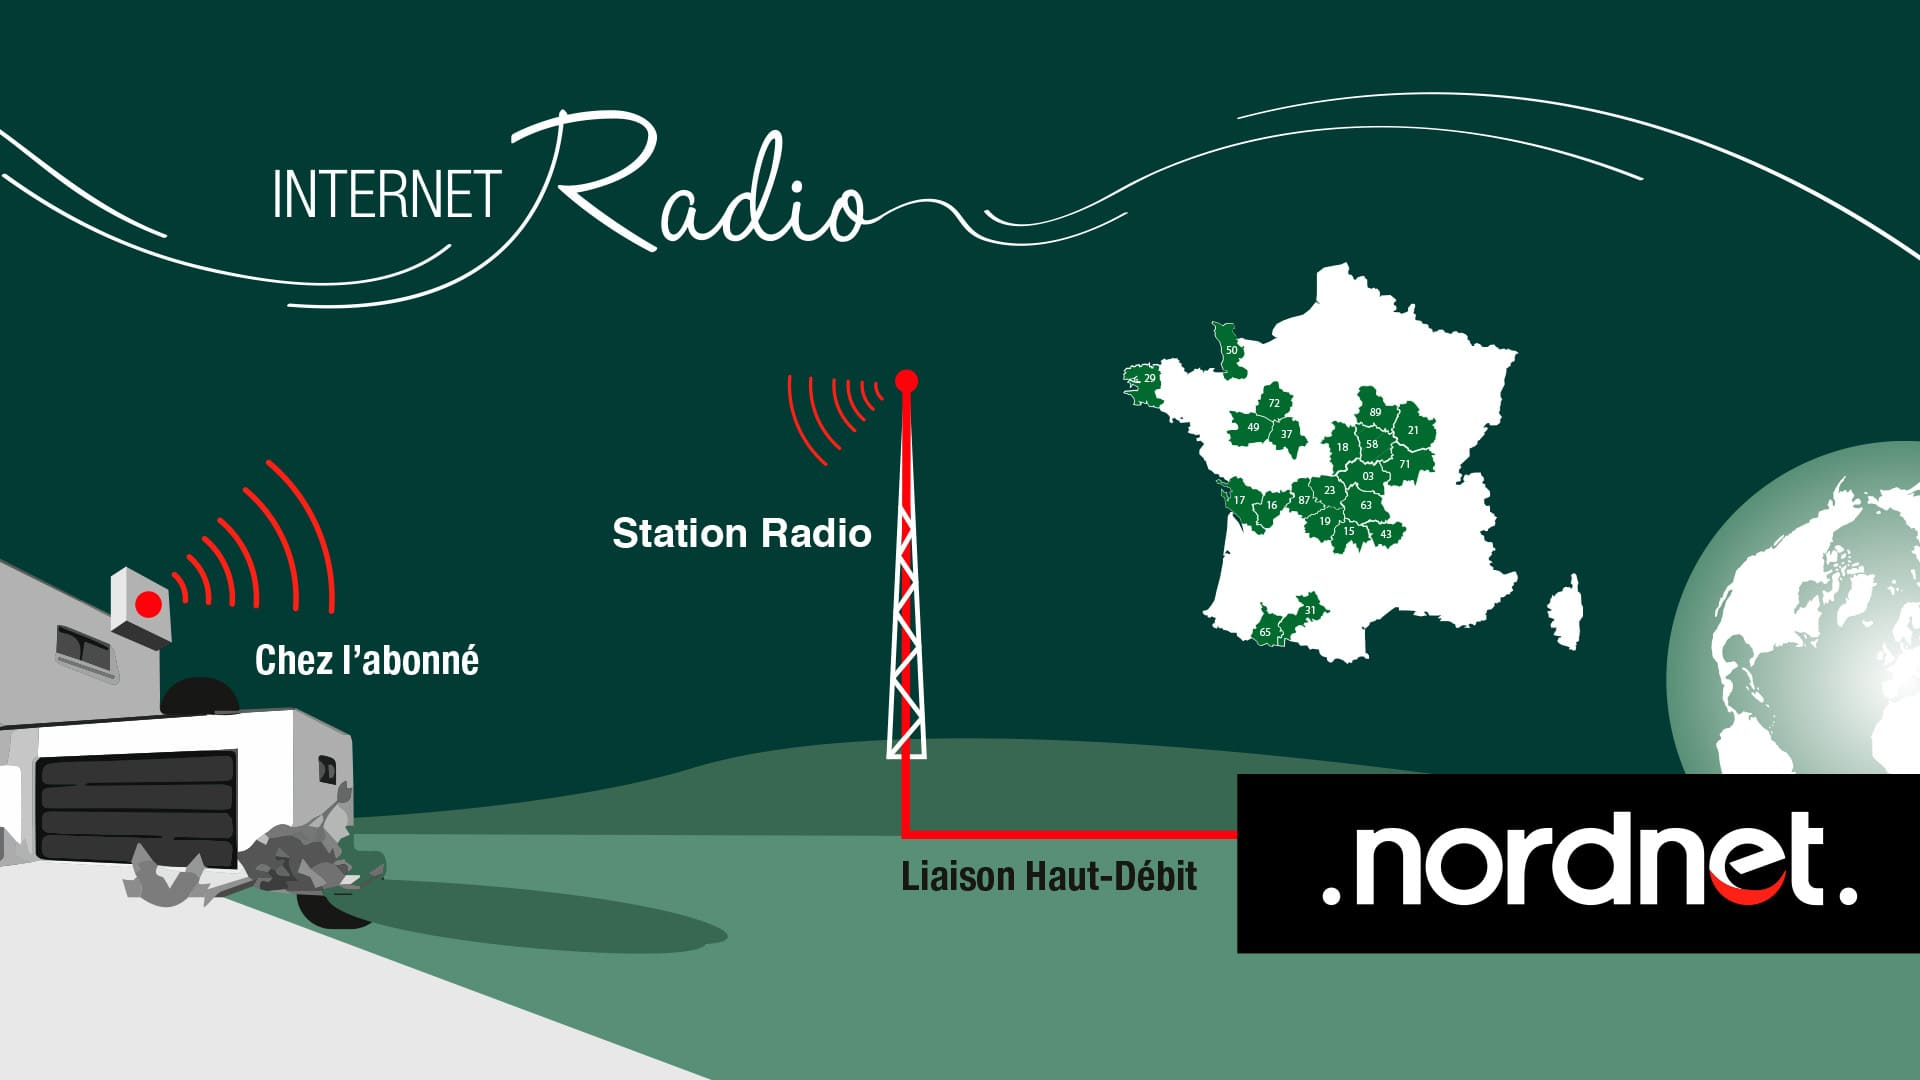 internet radio fonctionnement